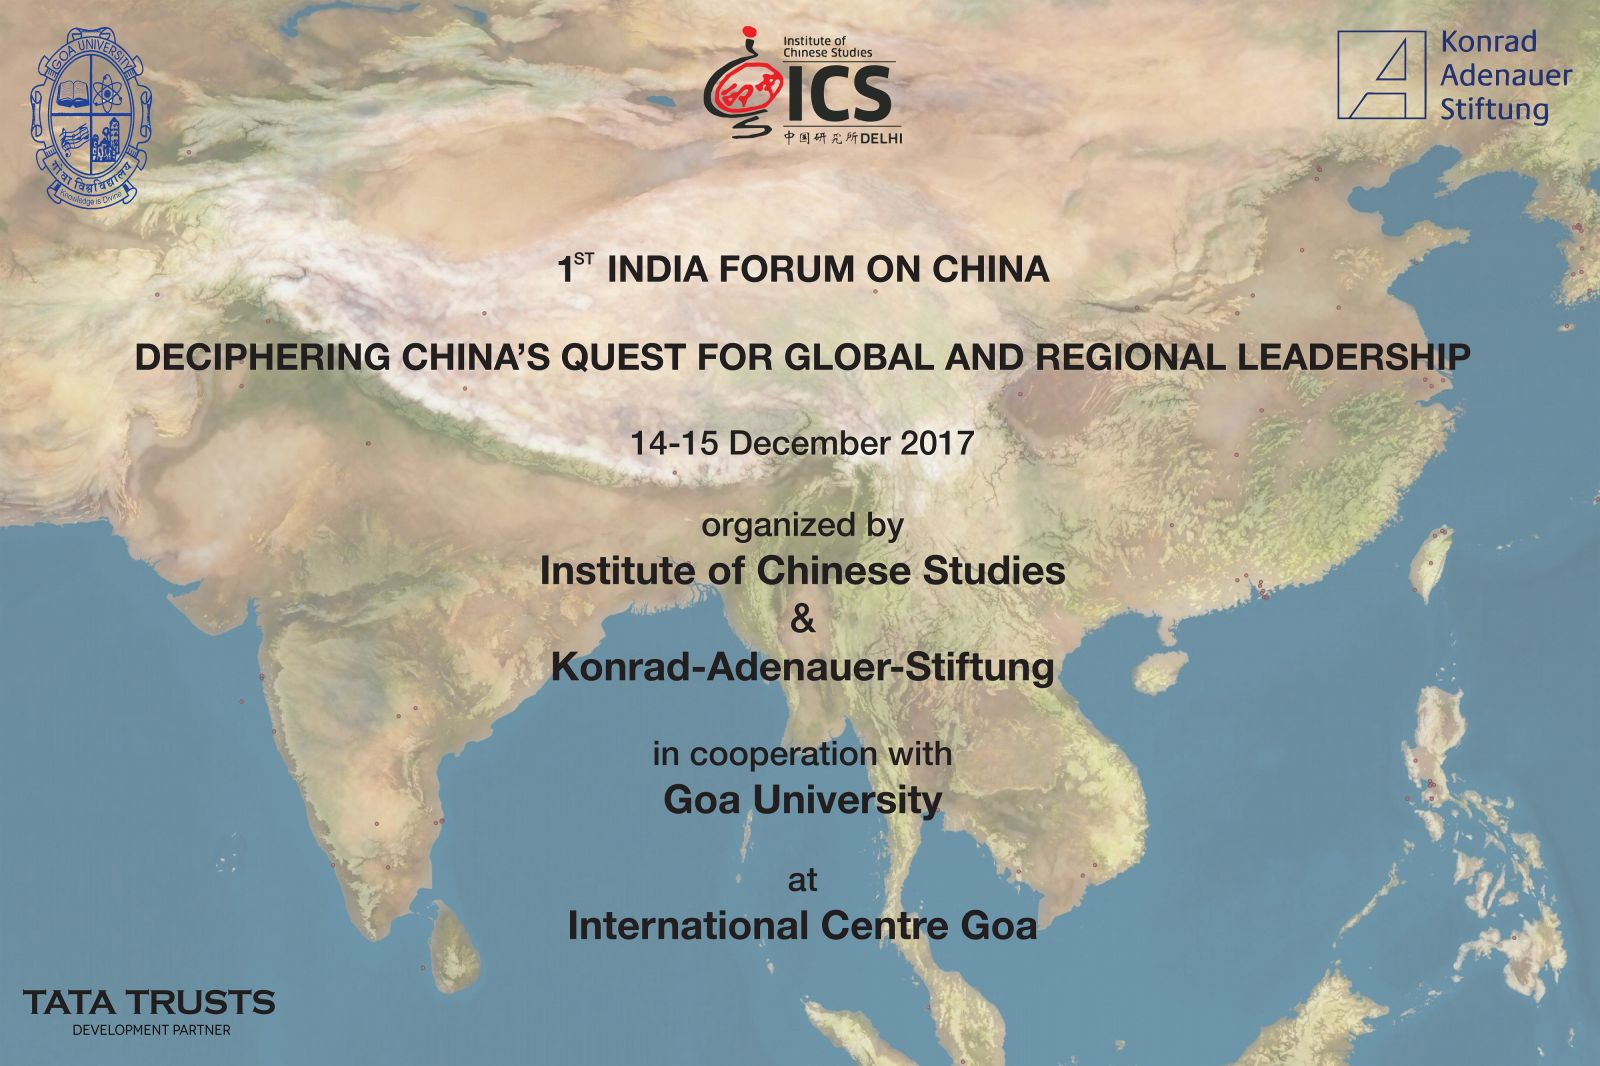 Ics institute of chinese studies the institute of chinese studies delhi and konrad adenauer stiftung india organized the 1st india forum on china at goa from 14 to 15 december 2017 in gumiabroncs Image collections